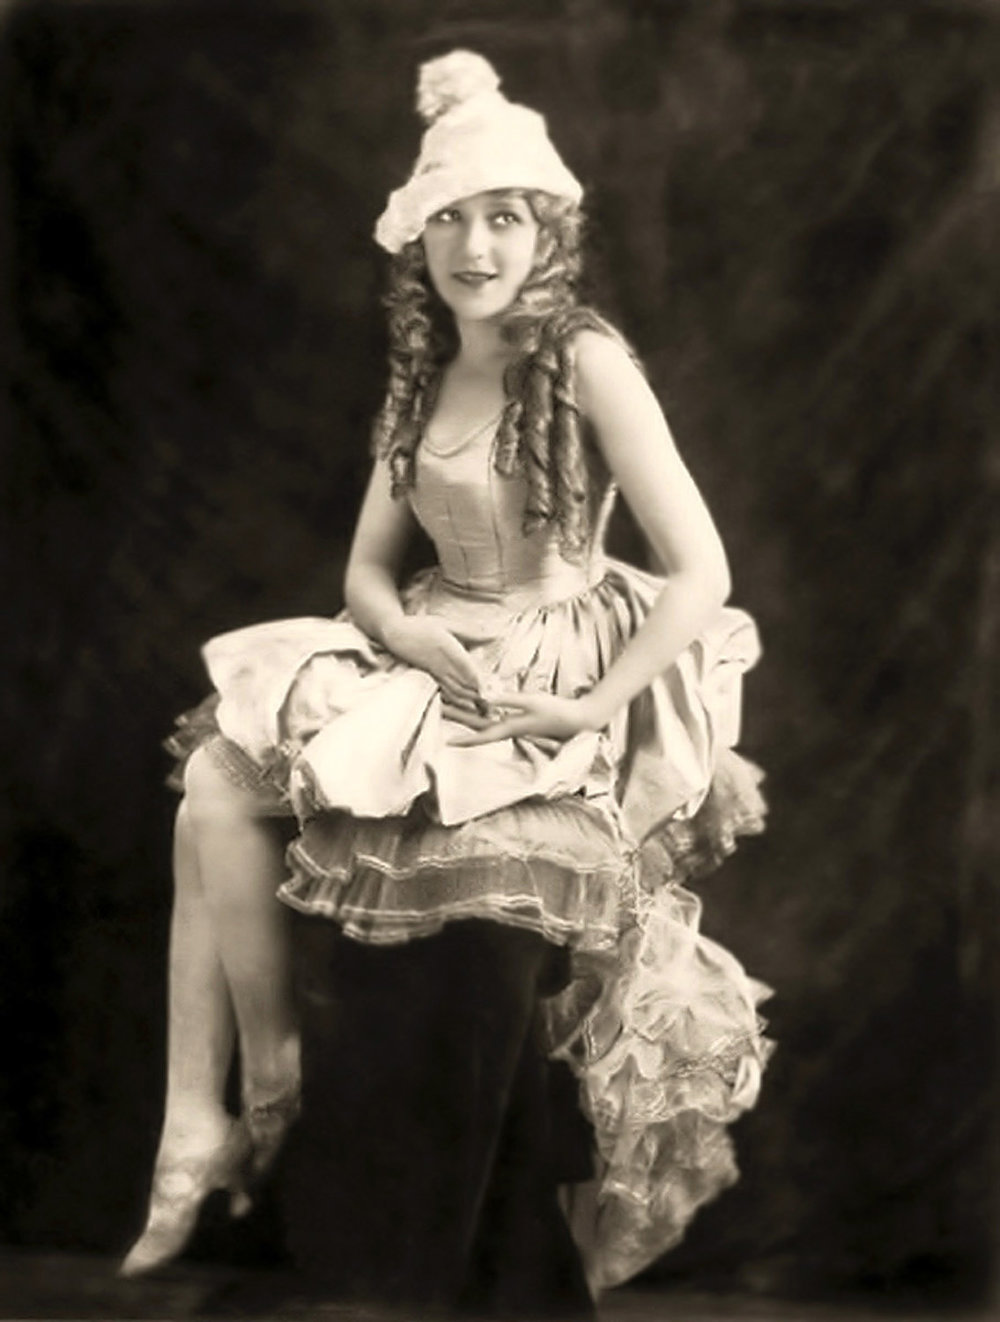 1910 - Mary Pickford